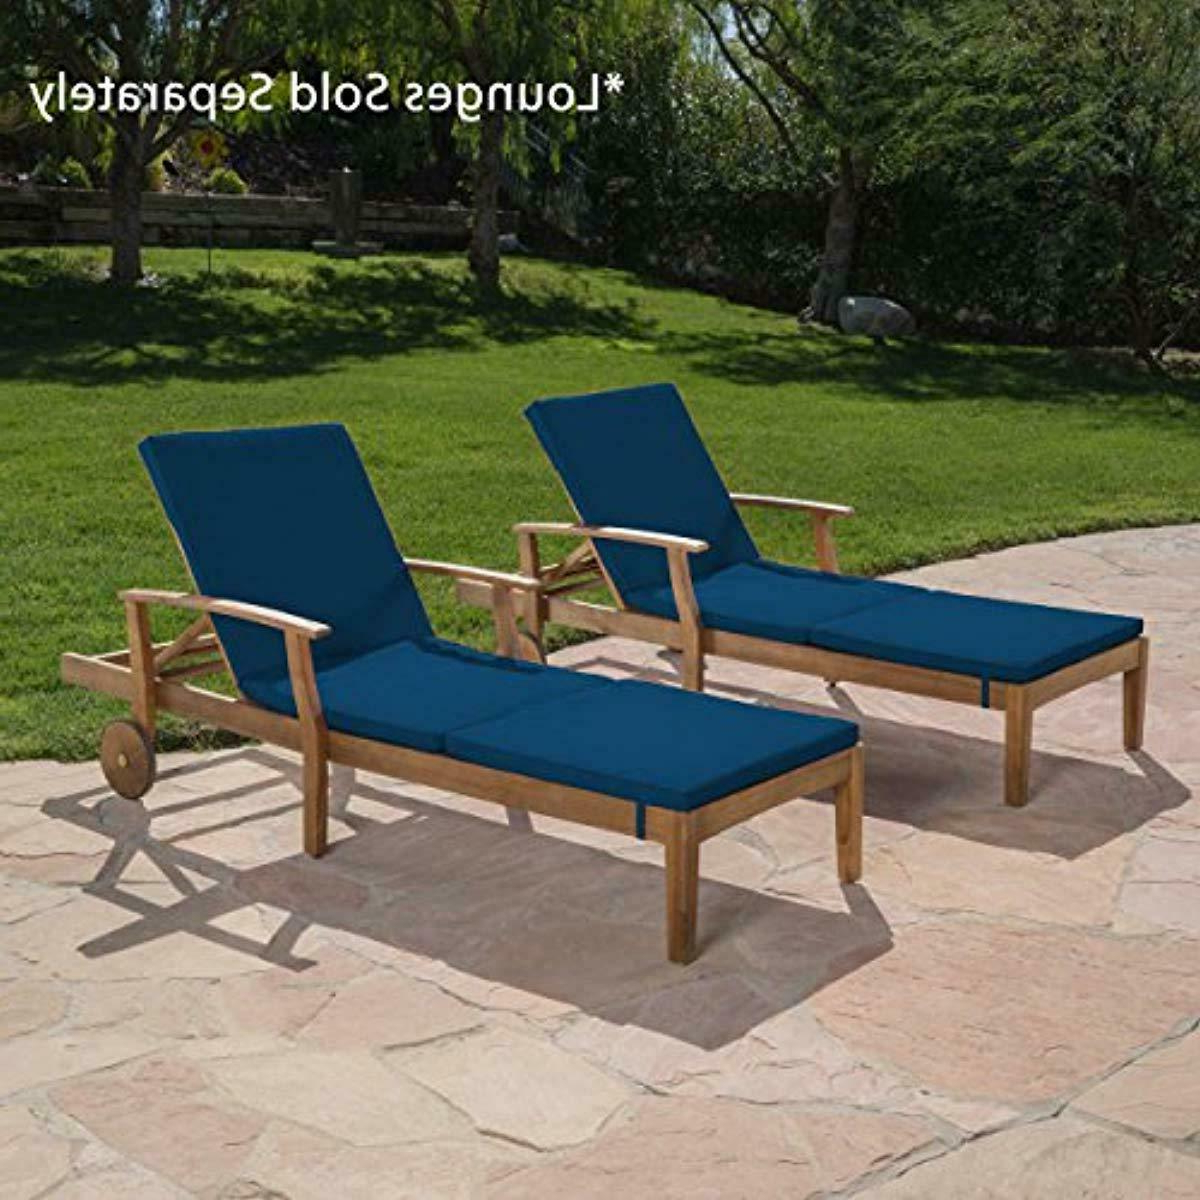 2019 Christopher Knight Home 303998 Jessica Outdoor Chaise Lounge Cushion (set Of 2), Regarding Salton Outdoor Chaise Lounges (View 16 of 25)